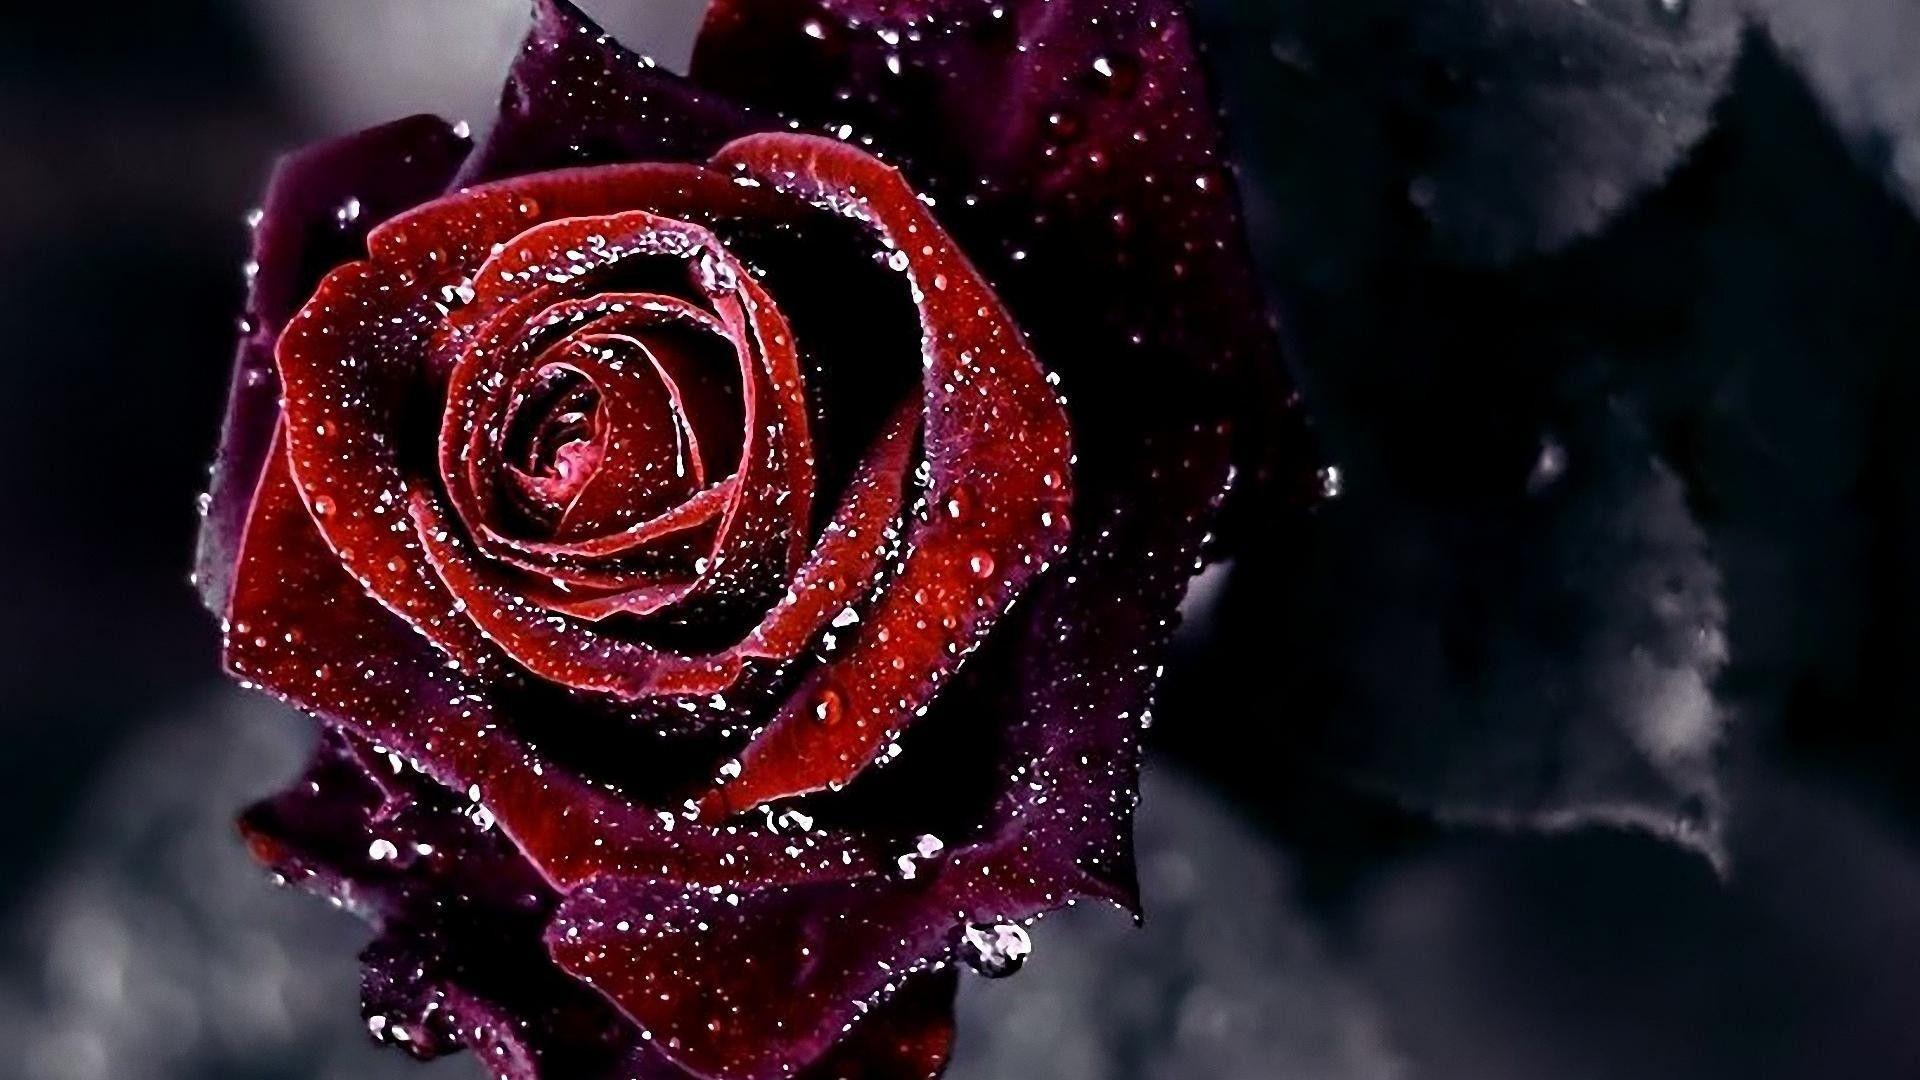 Black rose wallpapers wallpaper cave - Rose in snow wallpaper ...